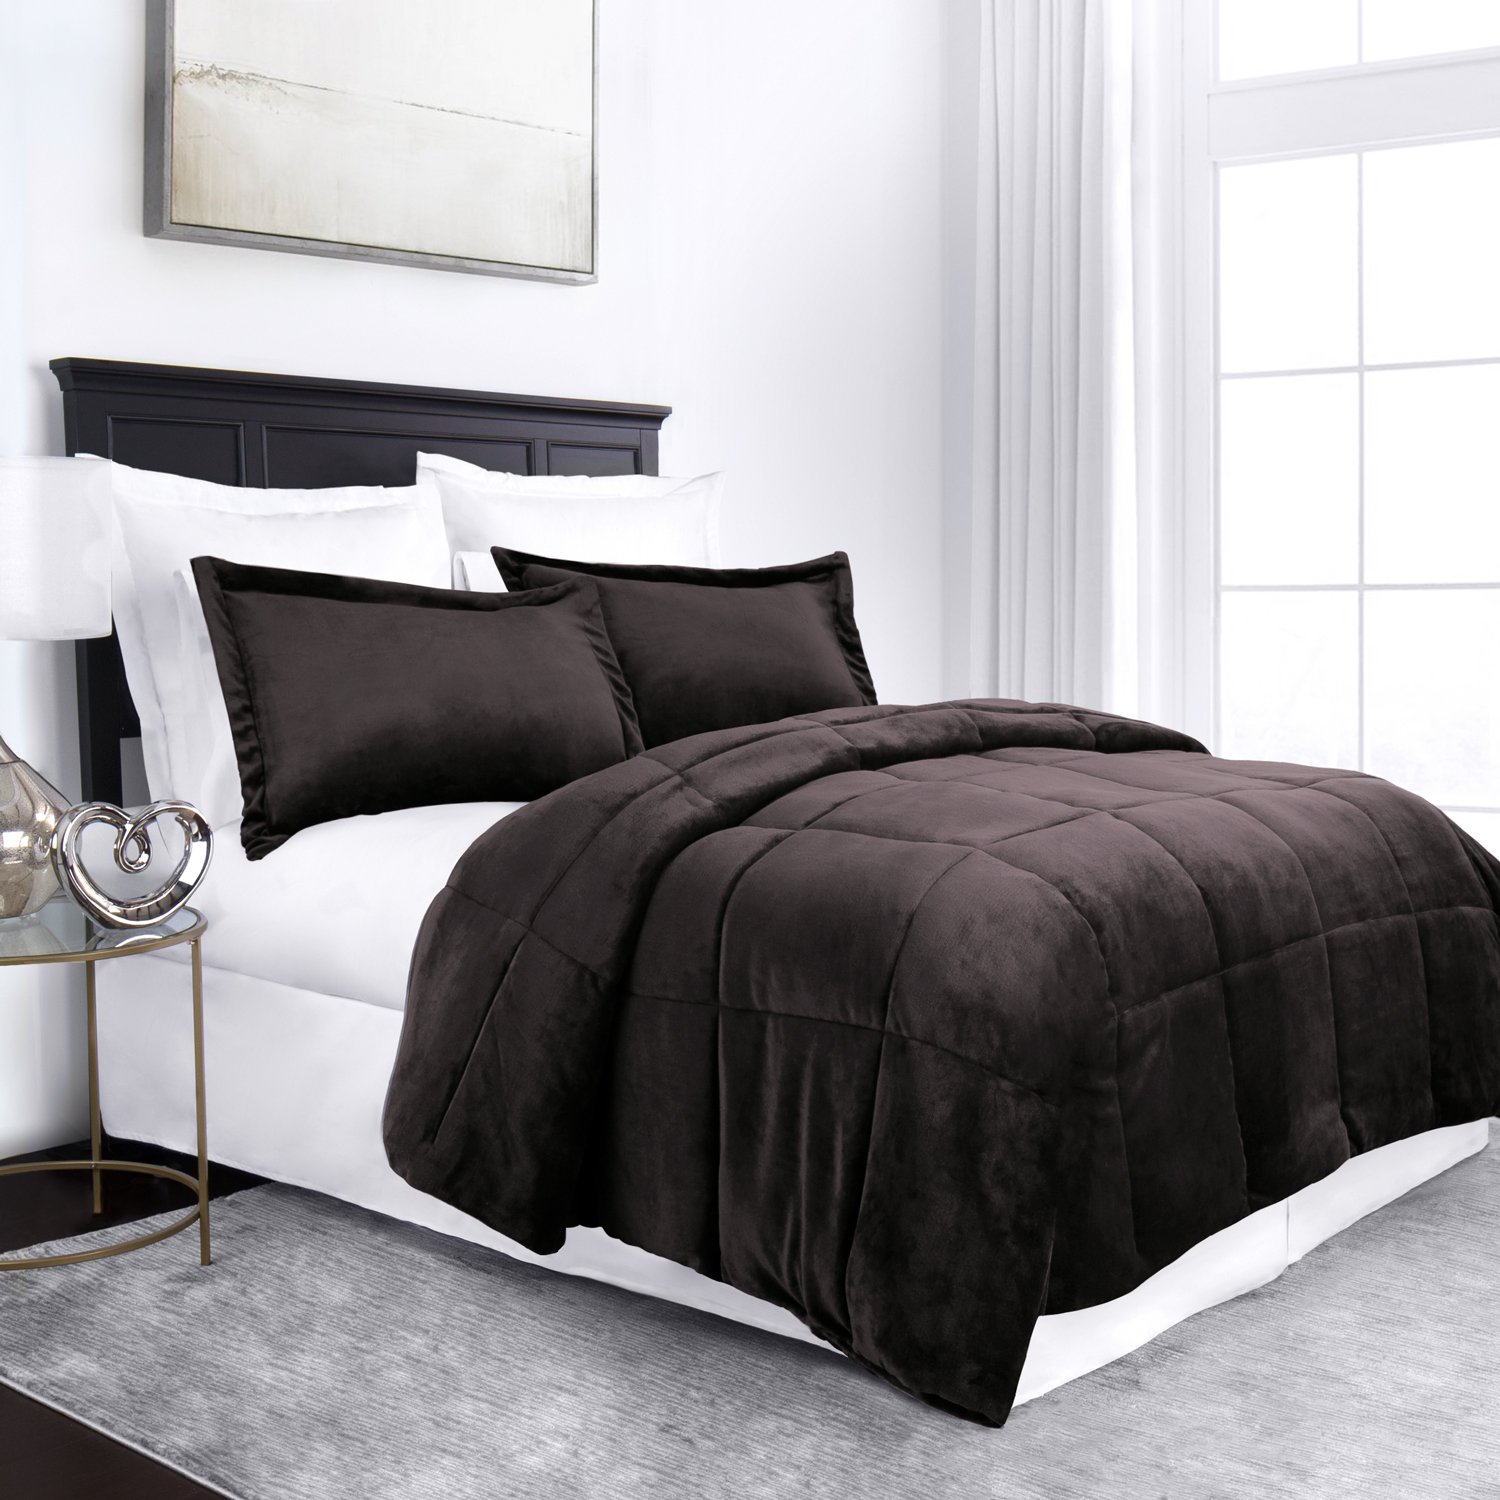 Sleep Restoration Micromink Goose Down Alternative Comforter Set - All Season Hotel Quality Luxury Hypoallergenic Comforter/Blanket with Shams - Full/Queen - Black RG-SRMCRMNKCOMF-F/Q-BLK